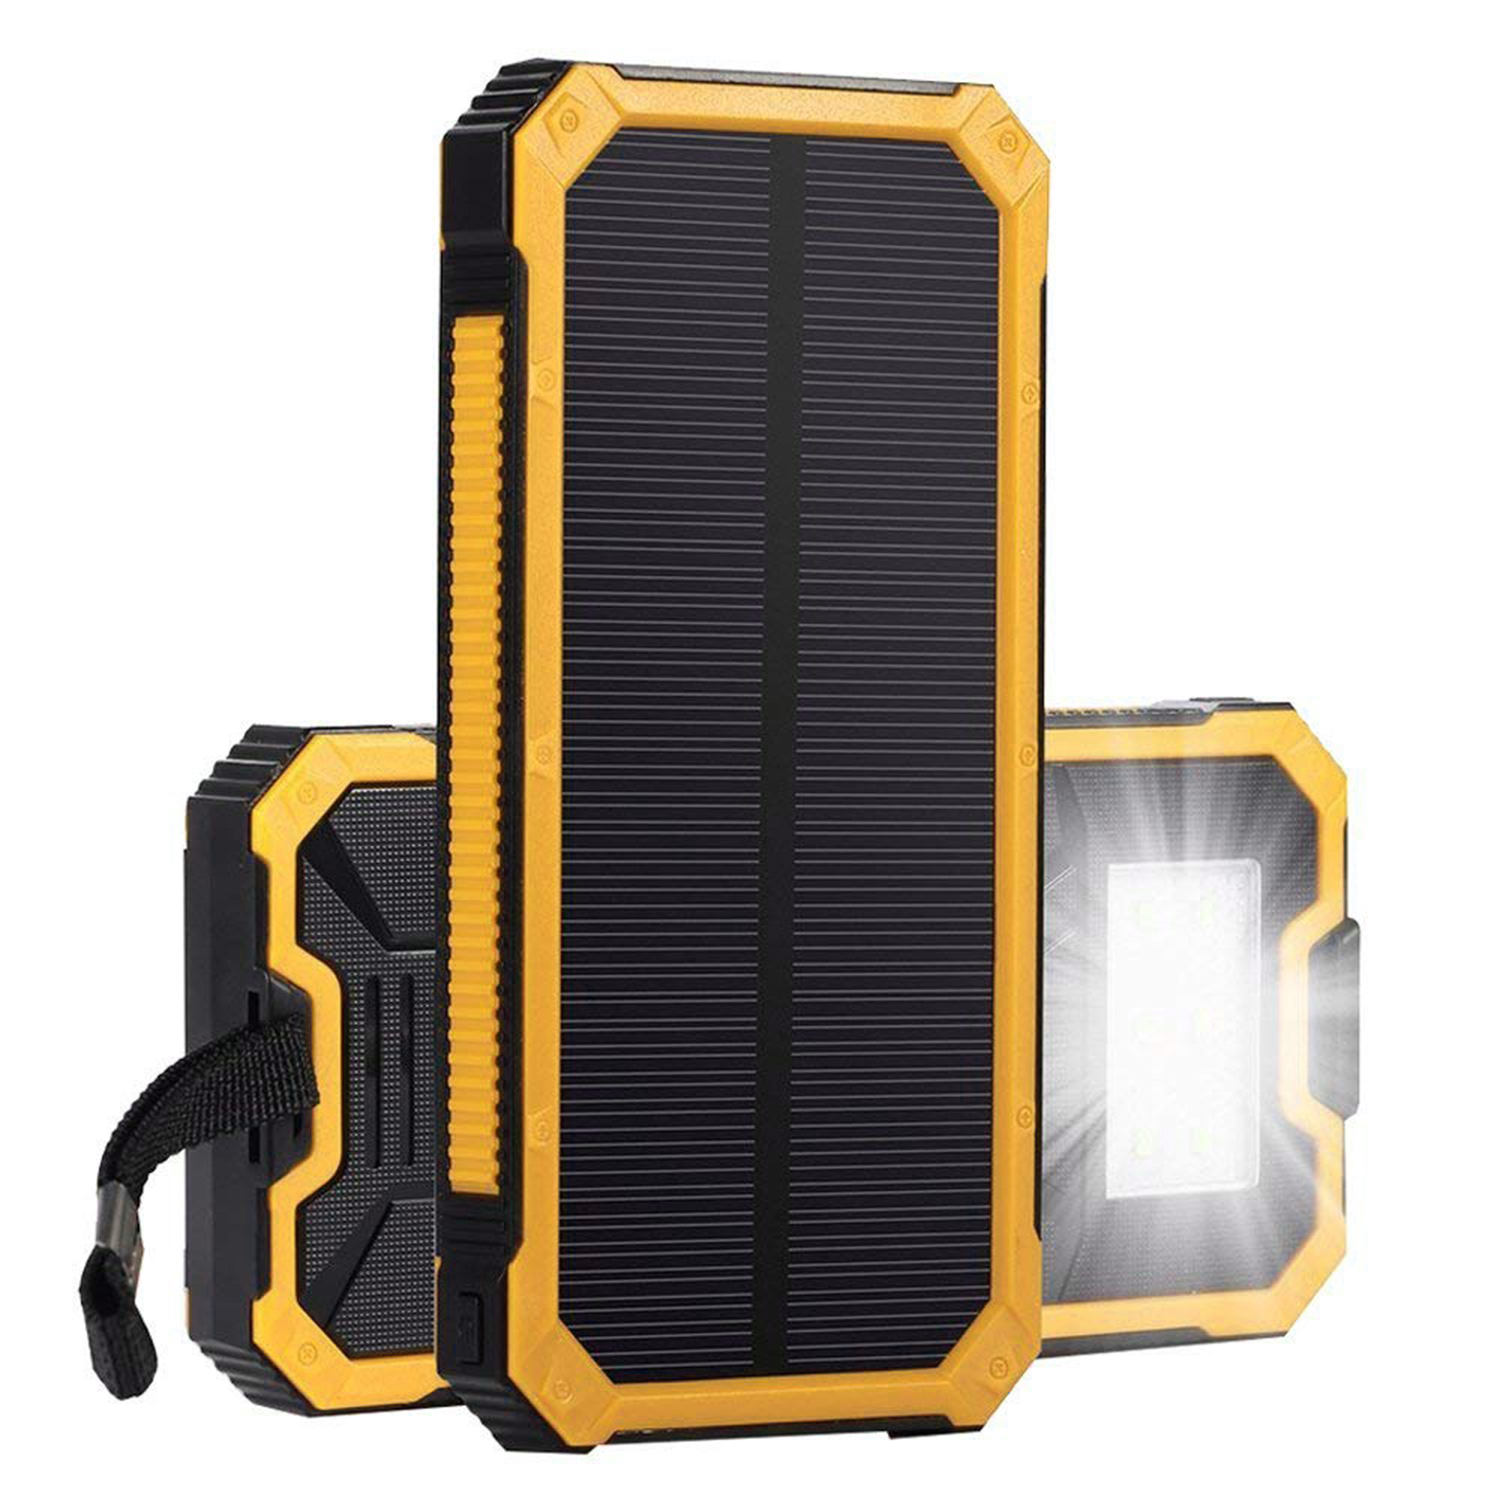 Waterproof 300000mAh Solar Power Bank Dual USB Battery Bank Solar Charger Portable External Backup Battery Pack for cell phone with LED Light Yellow